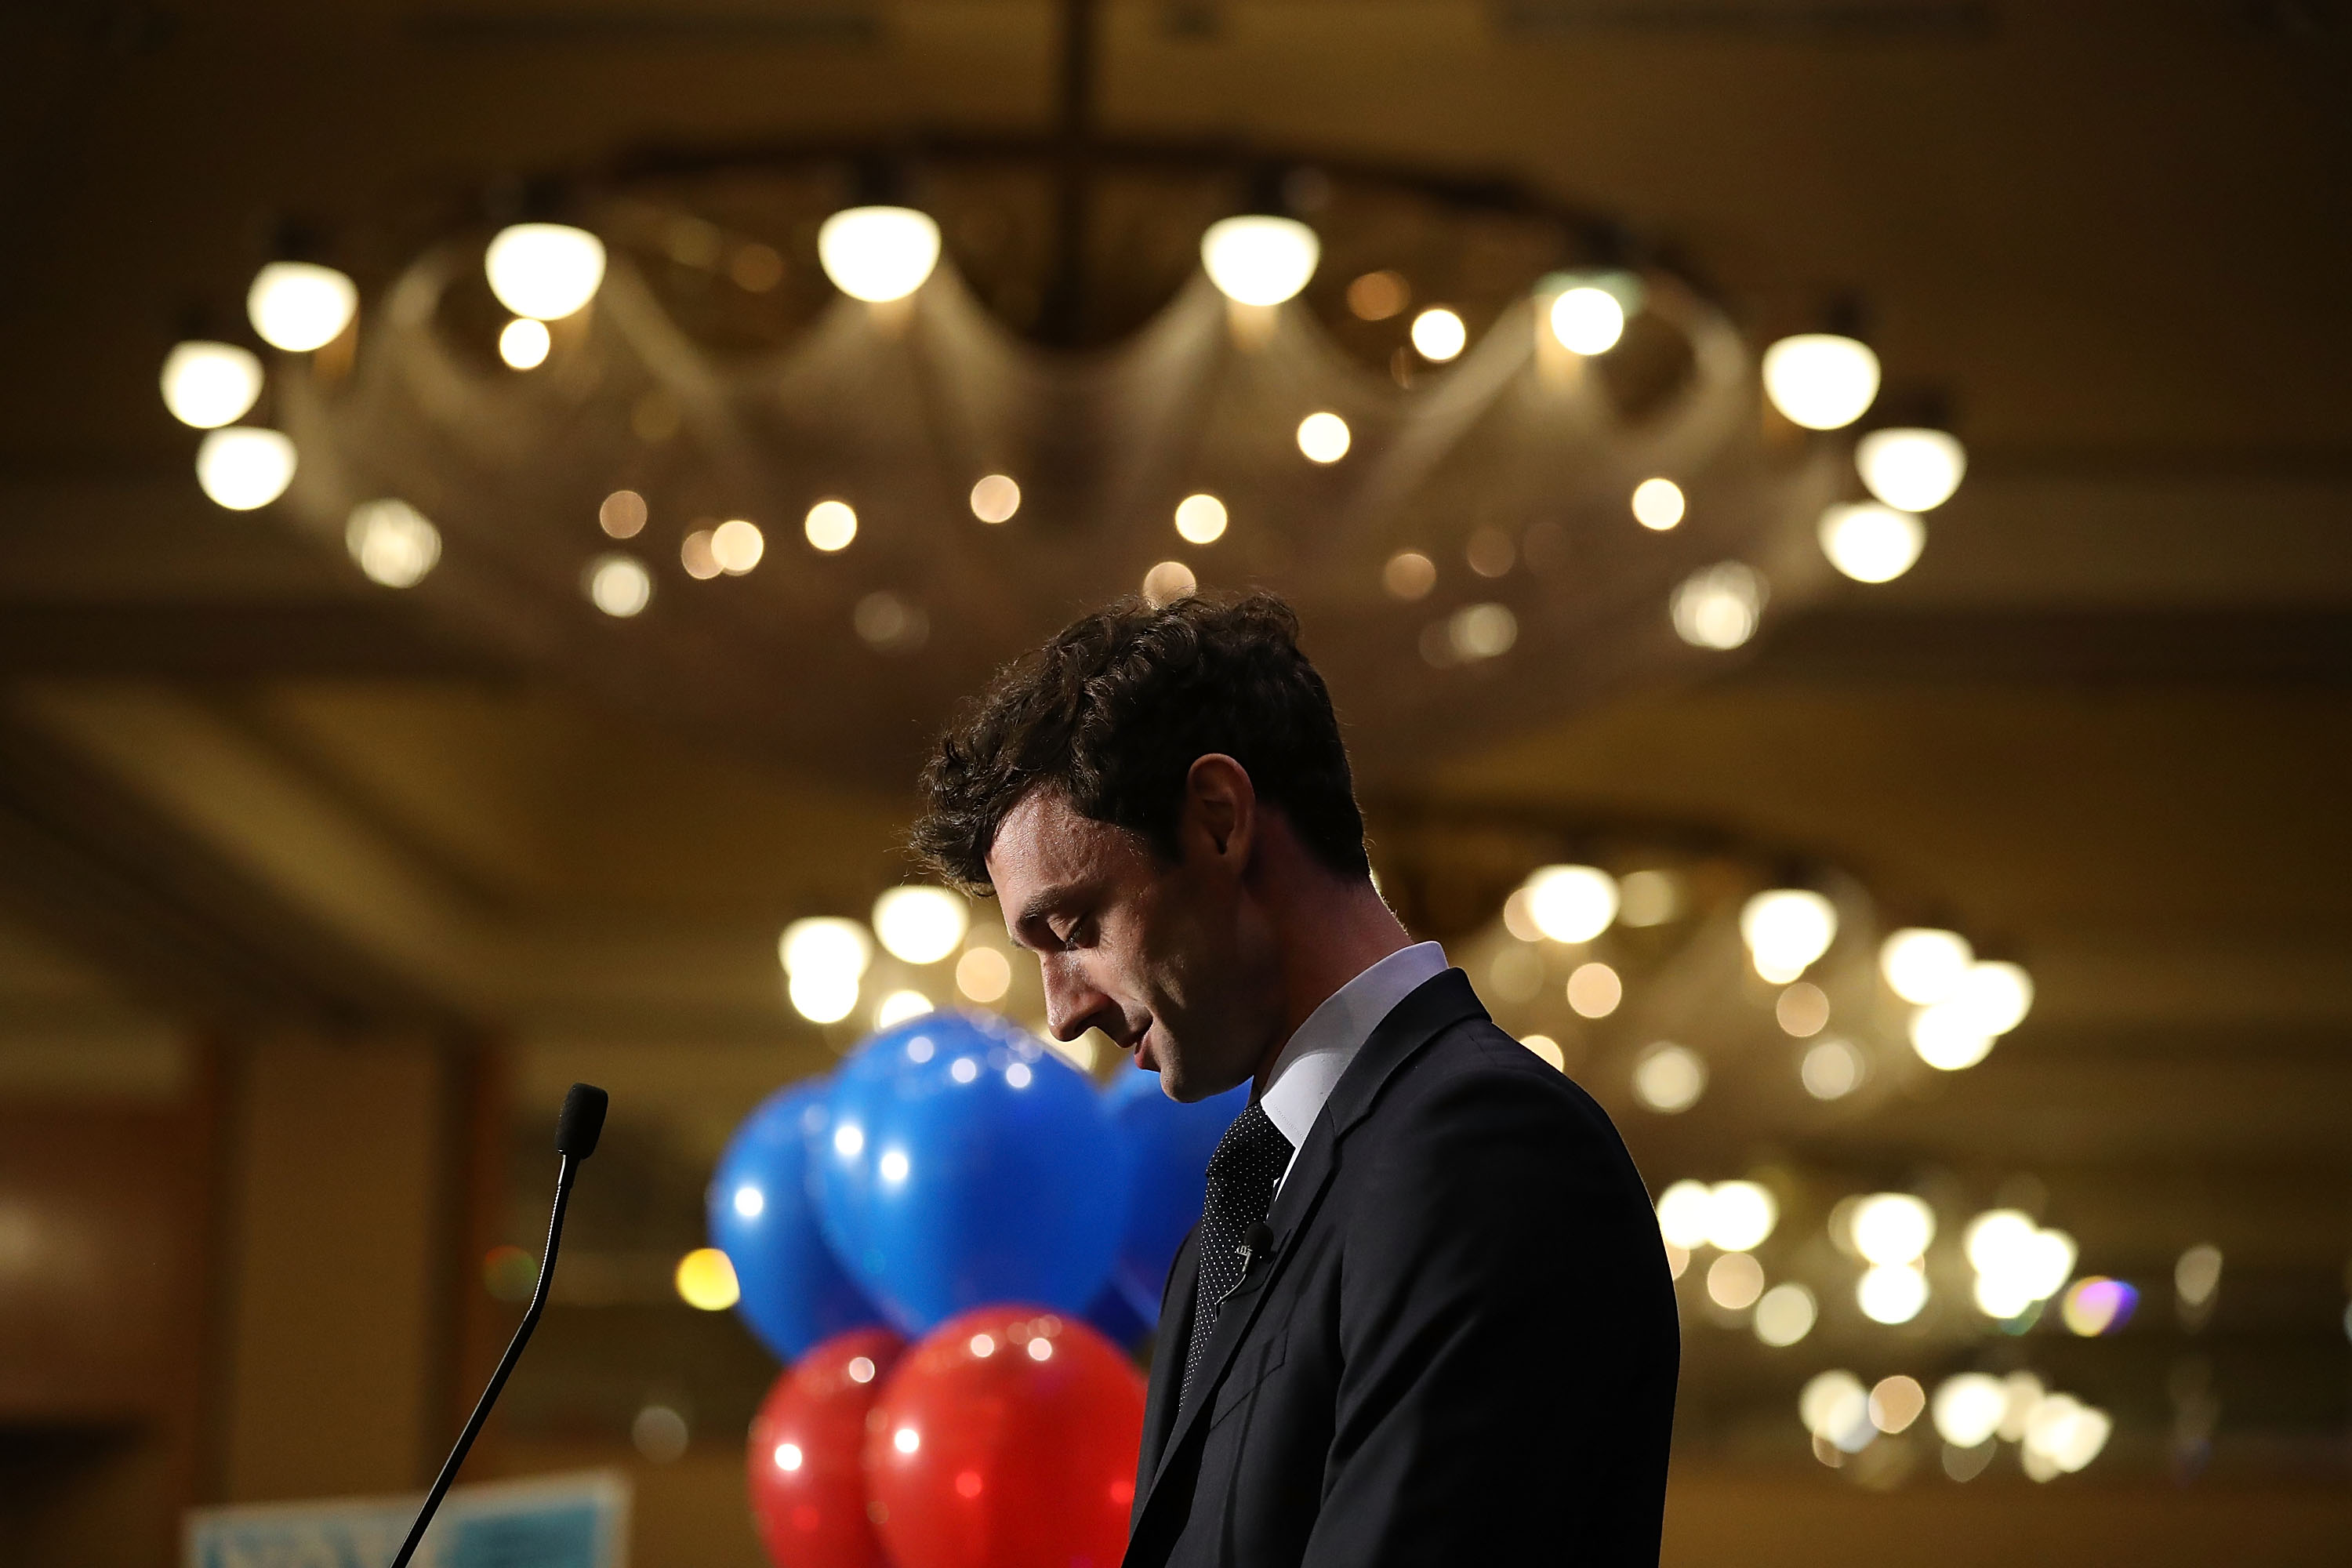 nafta and other trade deals have not gutted american manufacturing the law that could suppress democratic turnout in jon ossoff s special election a new lawsuit alleges that a voter registration law violates